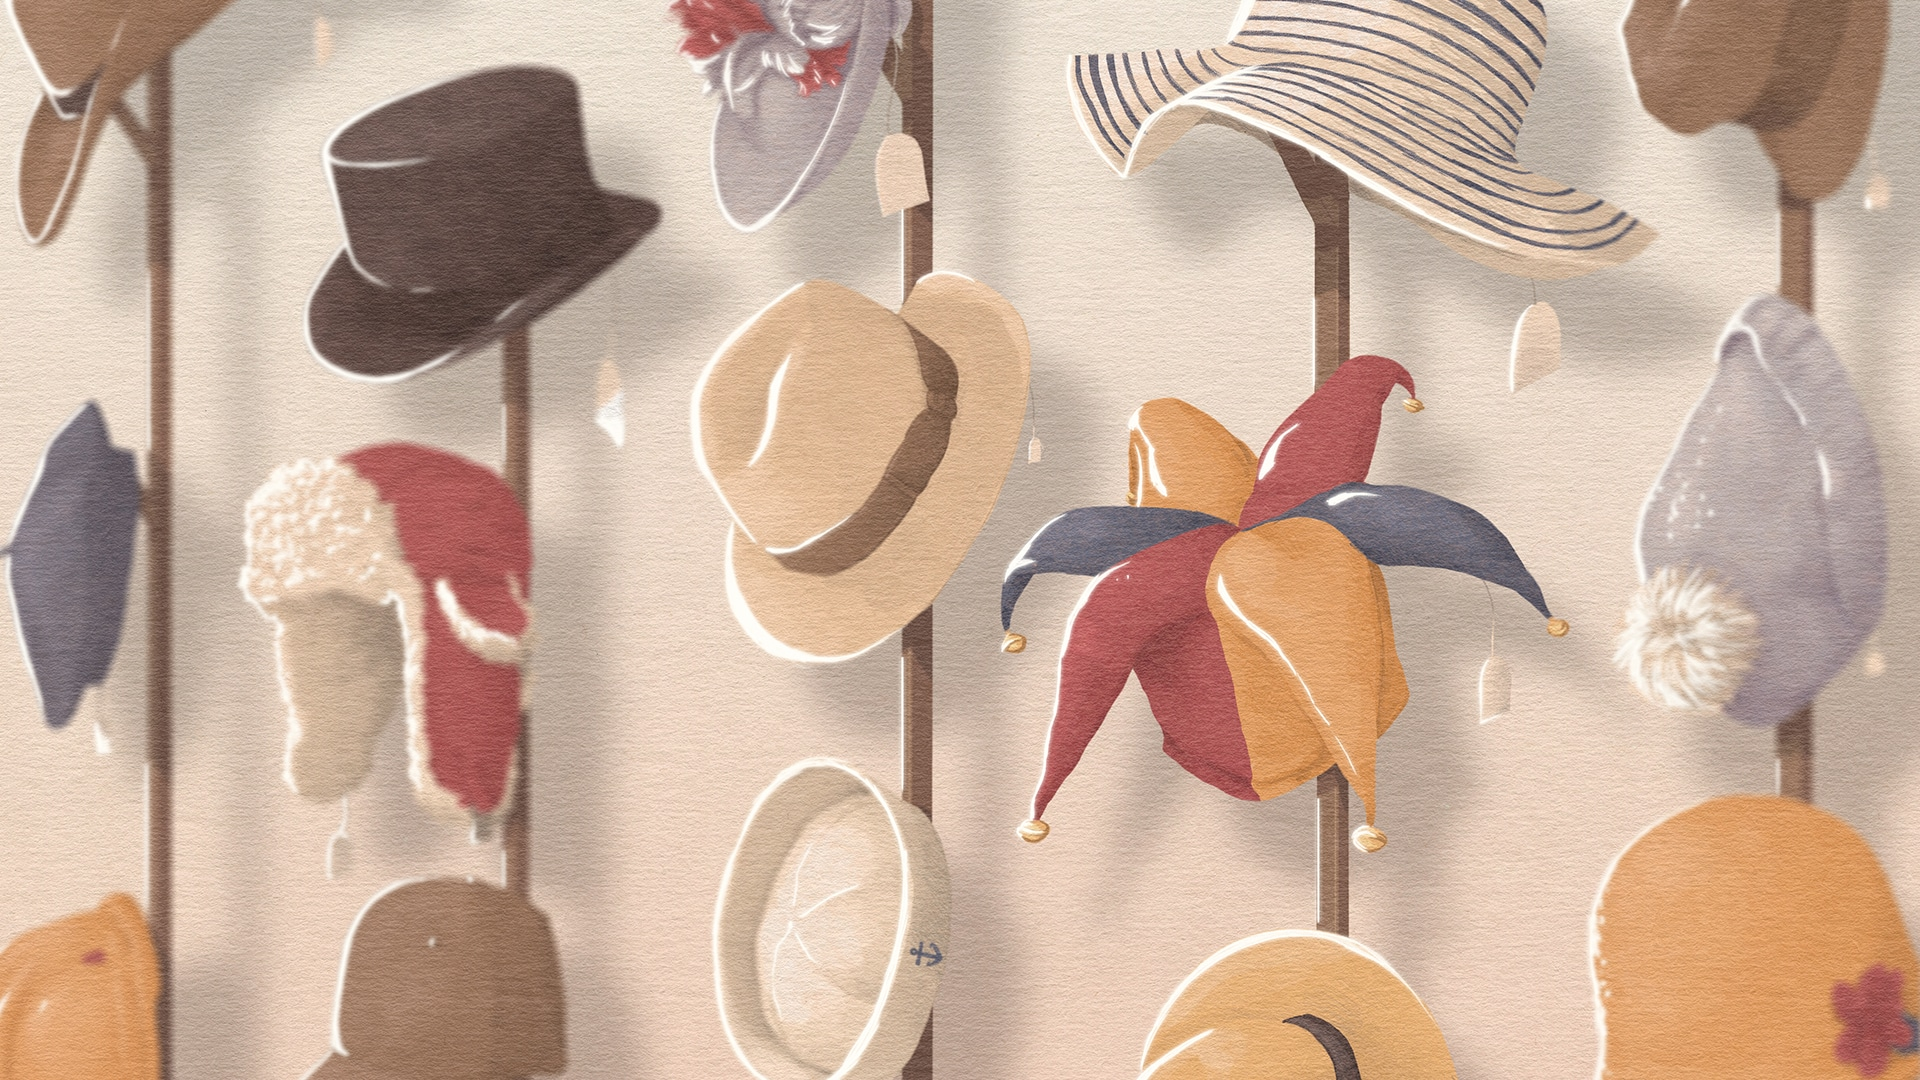 Illustration of various styles of hats, with different sizes of prices tags hanging from them.